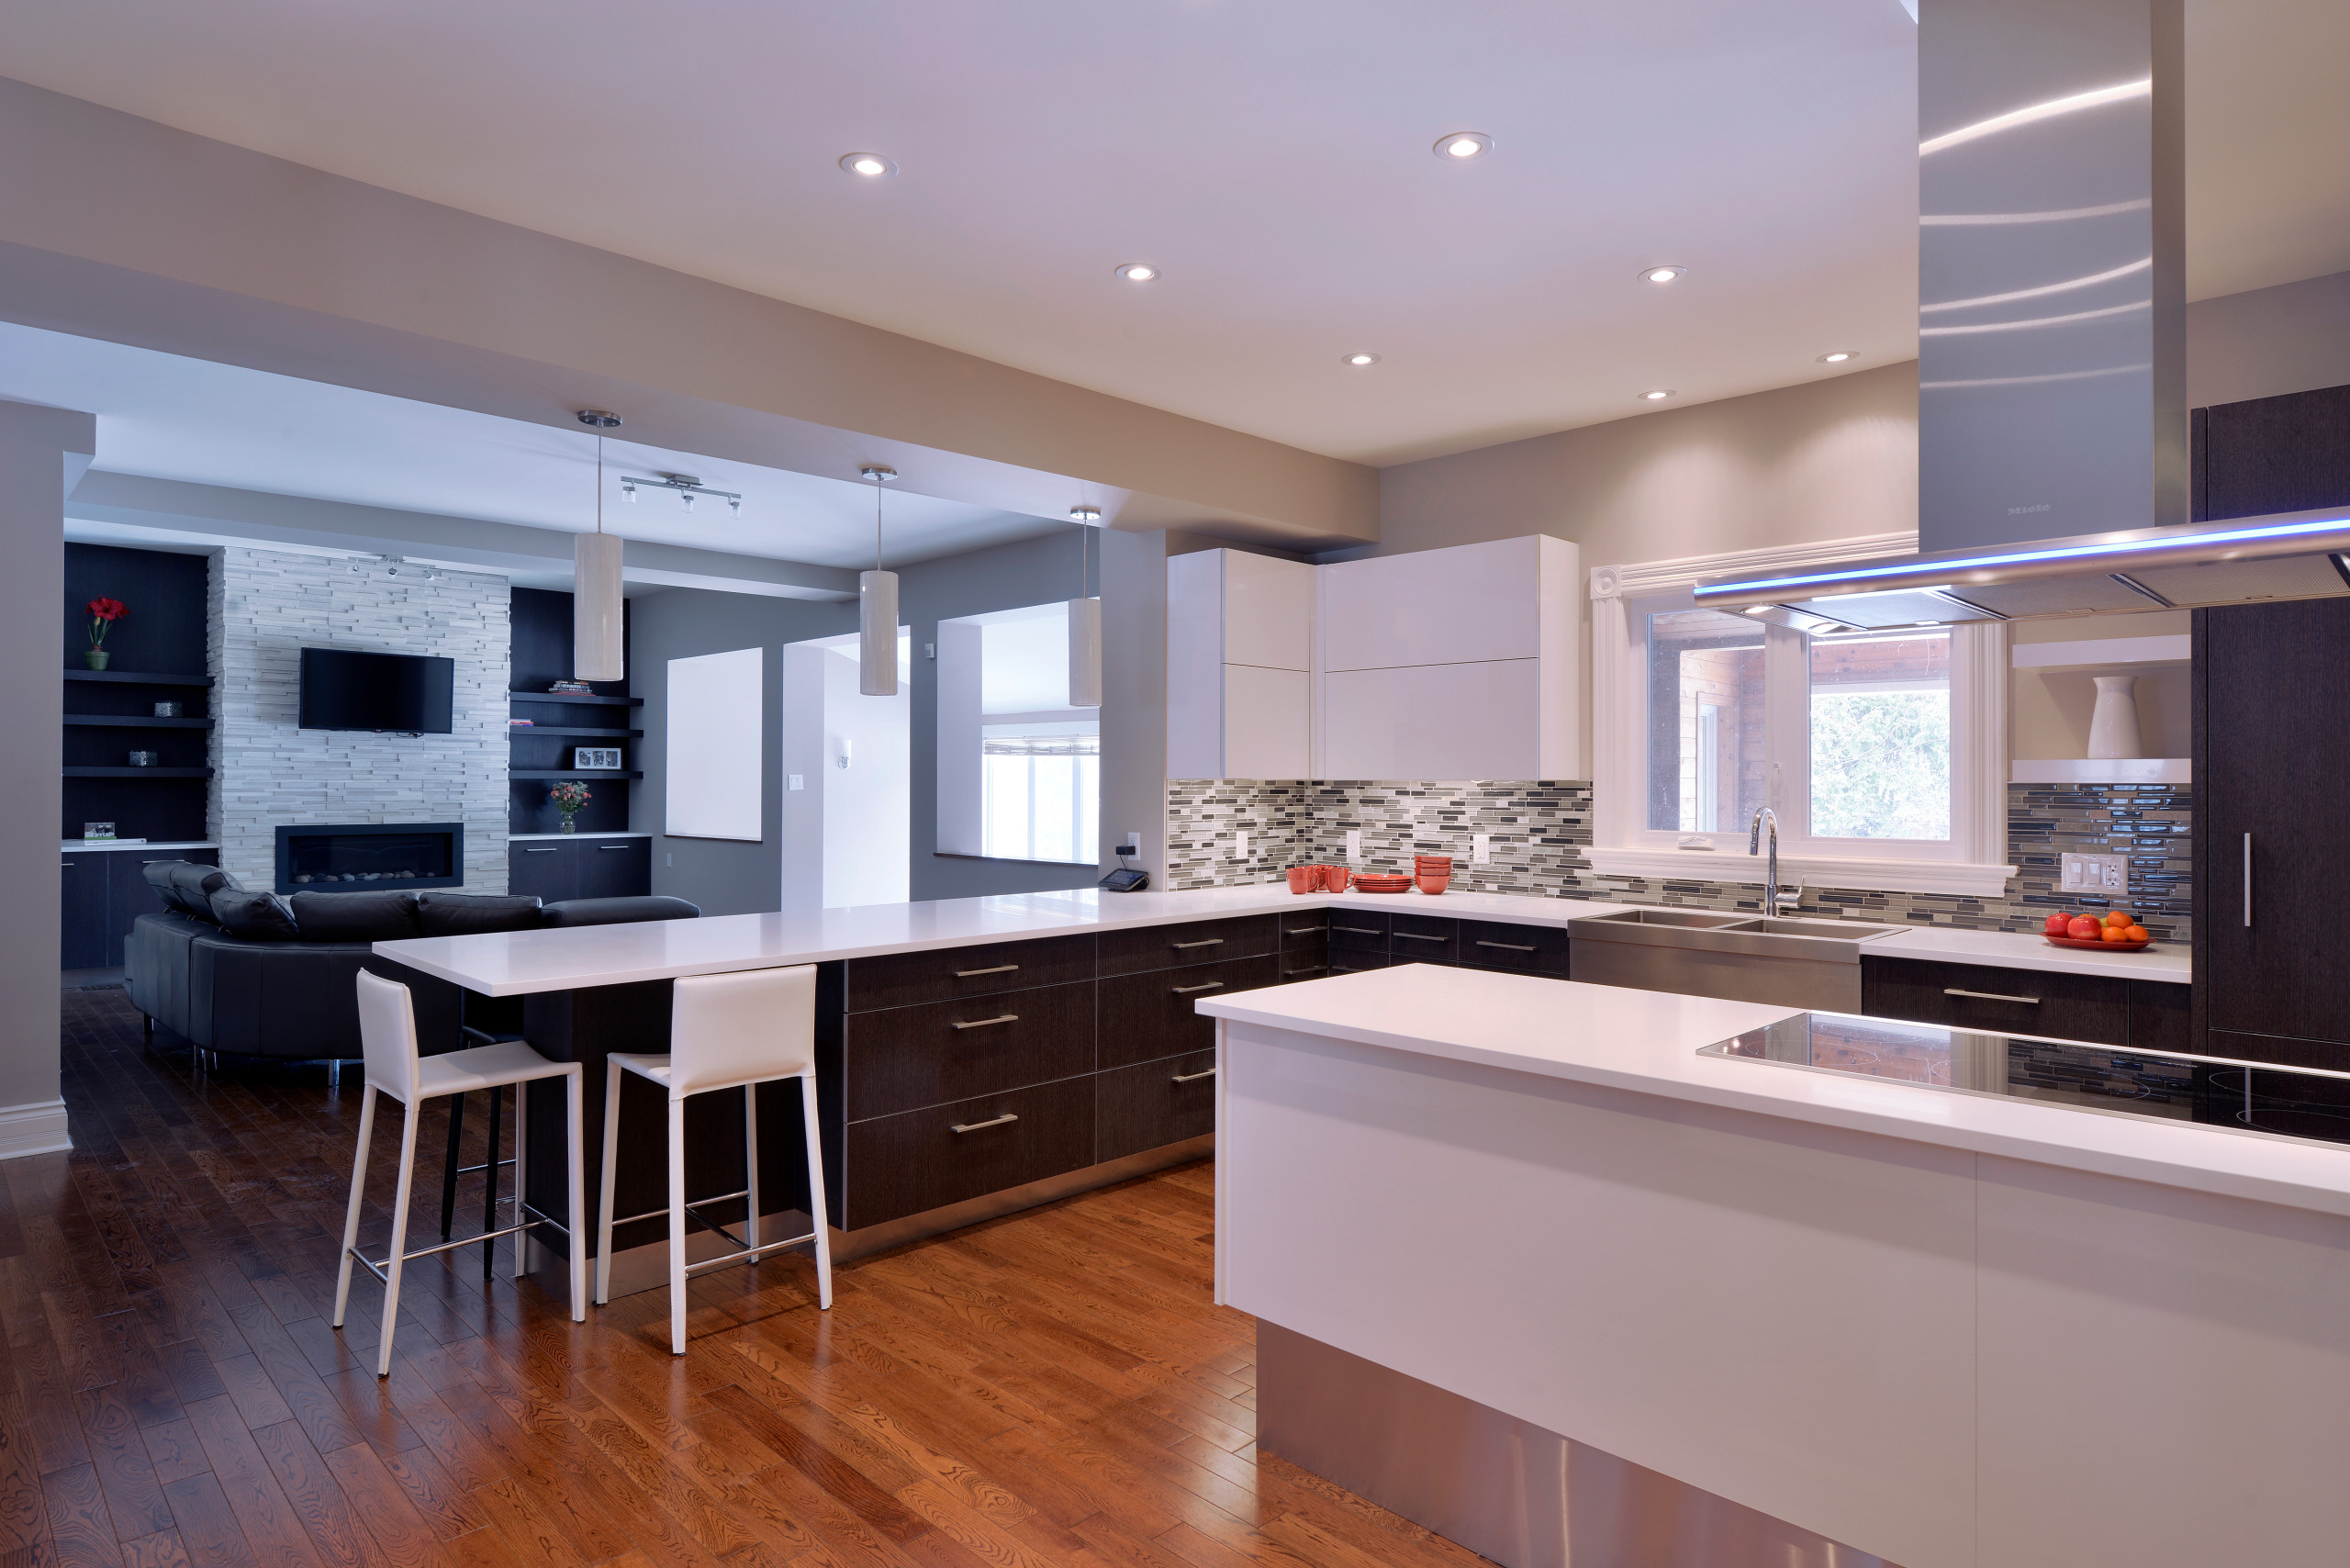 A backsplash that reaches the bottom of the upper cabinets.